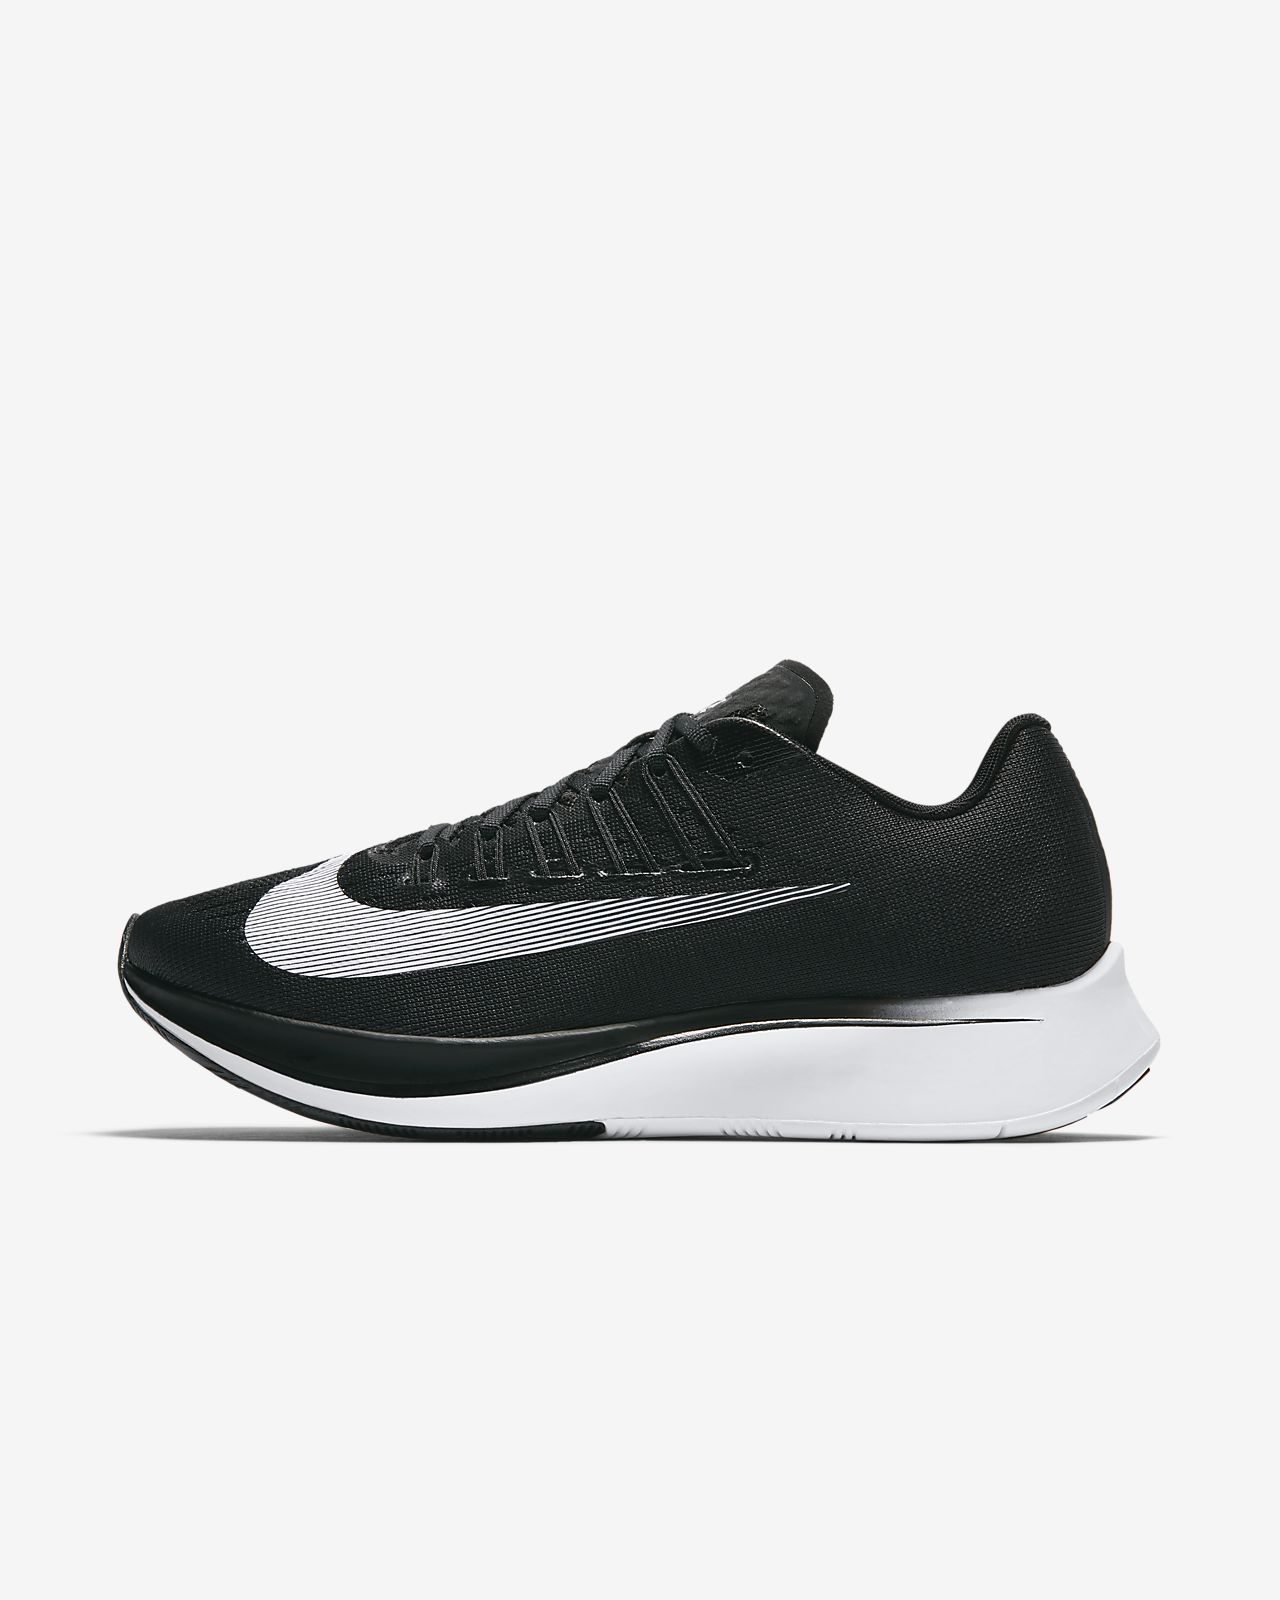 Chaussure de running Nike Fly Zoom Fly Nike pour Femme. Nike FR 1af49f